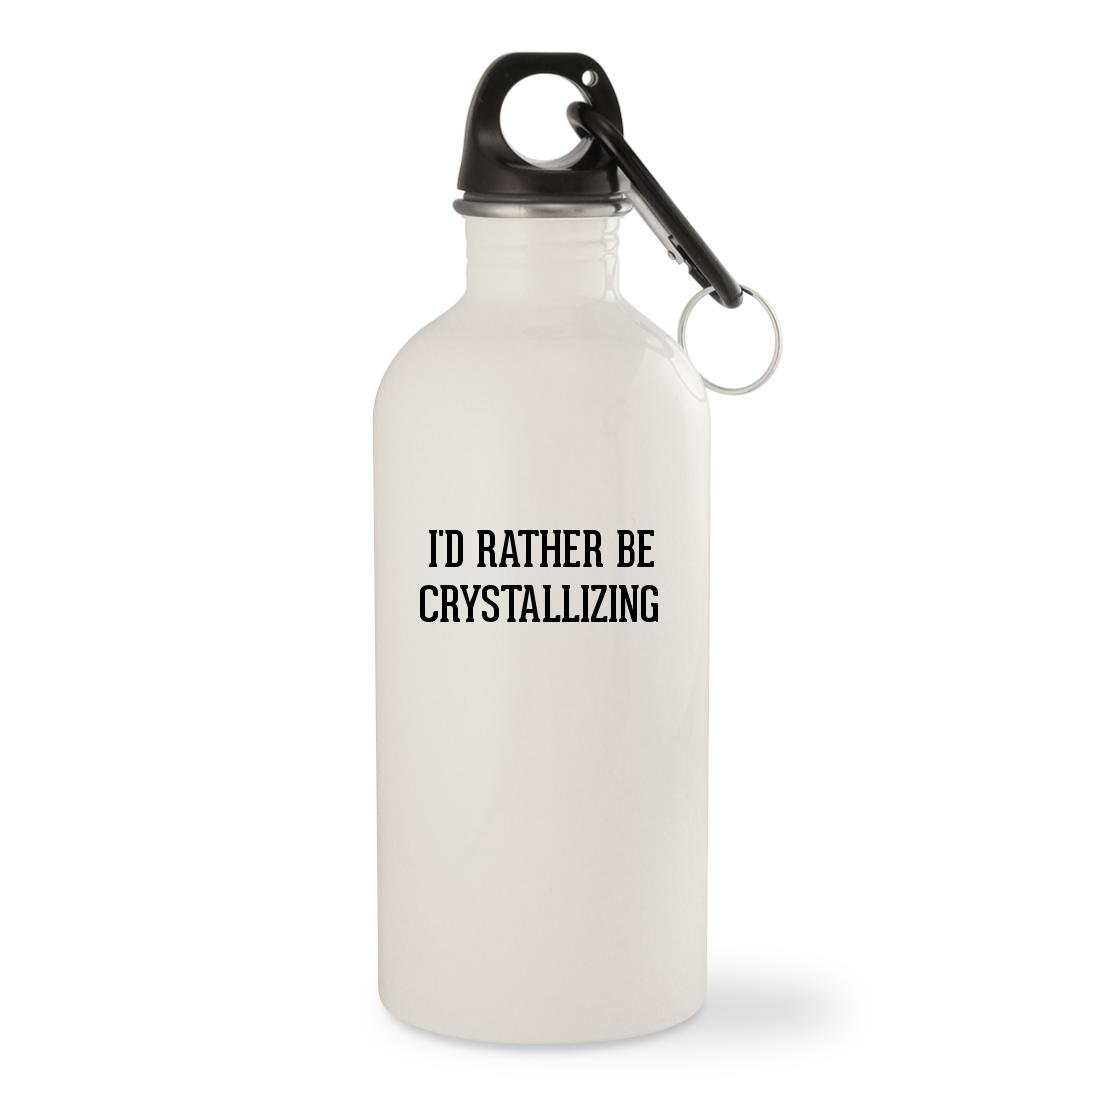 I'd Rather Be CRYSTALLIZING - White 20oz Stainless Steel Water Bottle with Carabiner